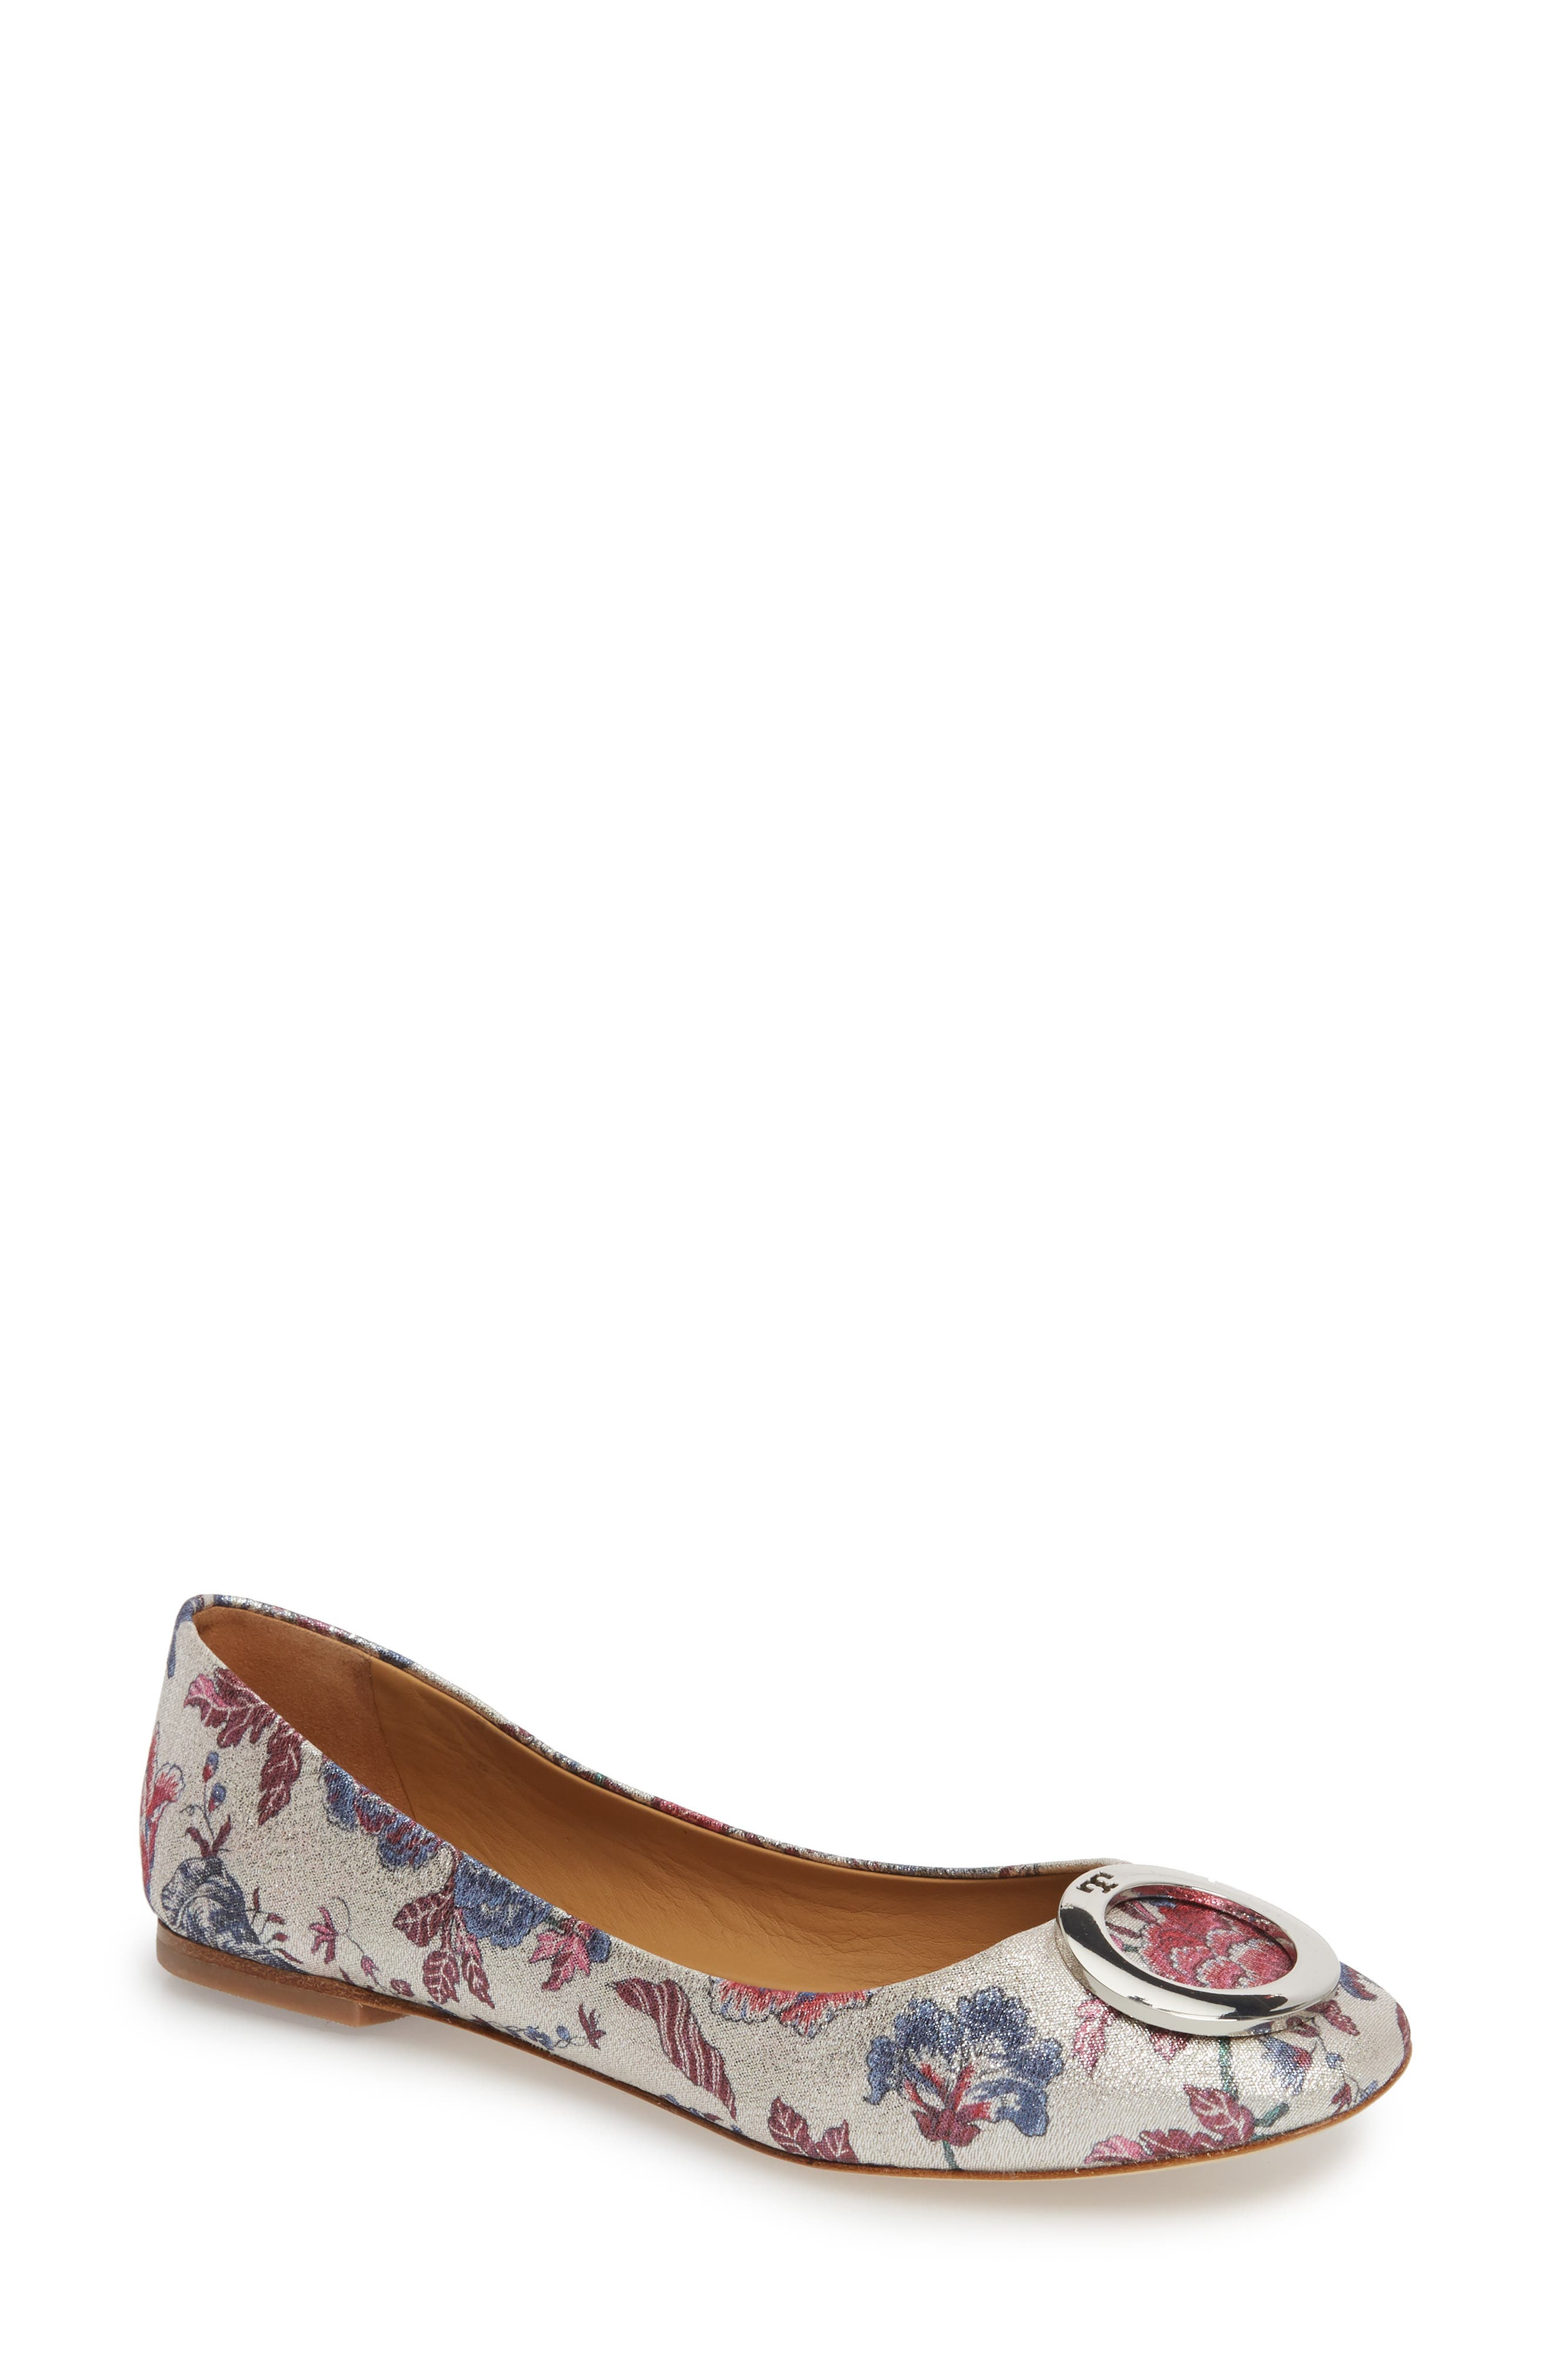 Caterina Ballet Flat,                         Main,                         color, MULTI HAPPY TIMES